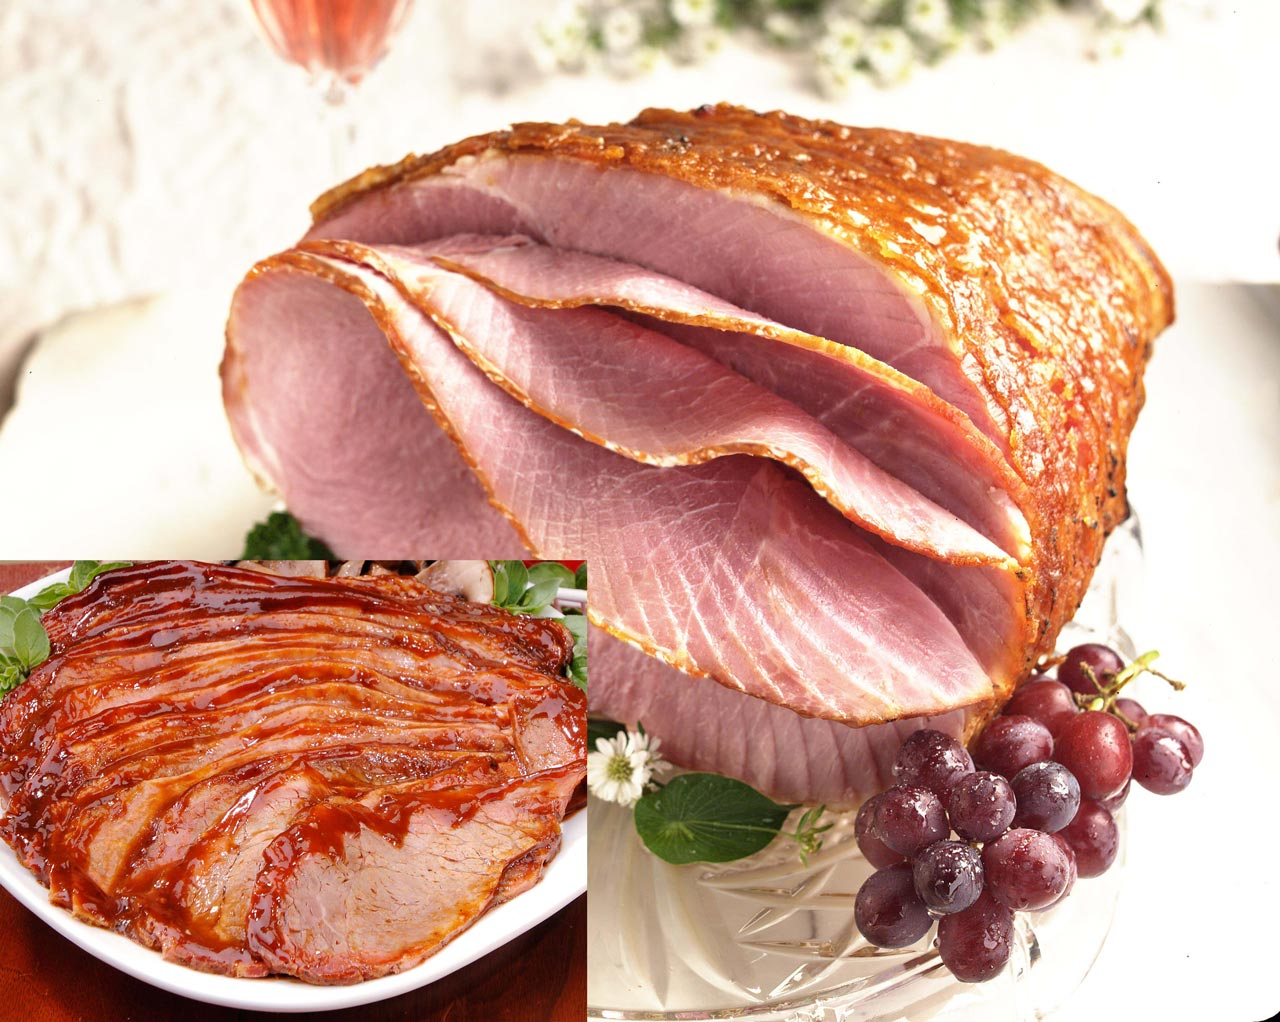 Holiday Ham with Hickory Smoked Sliced Beef Brisket